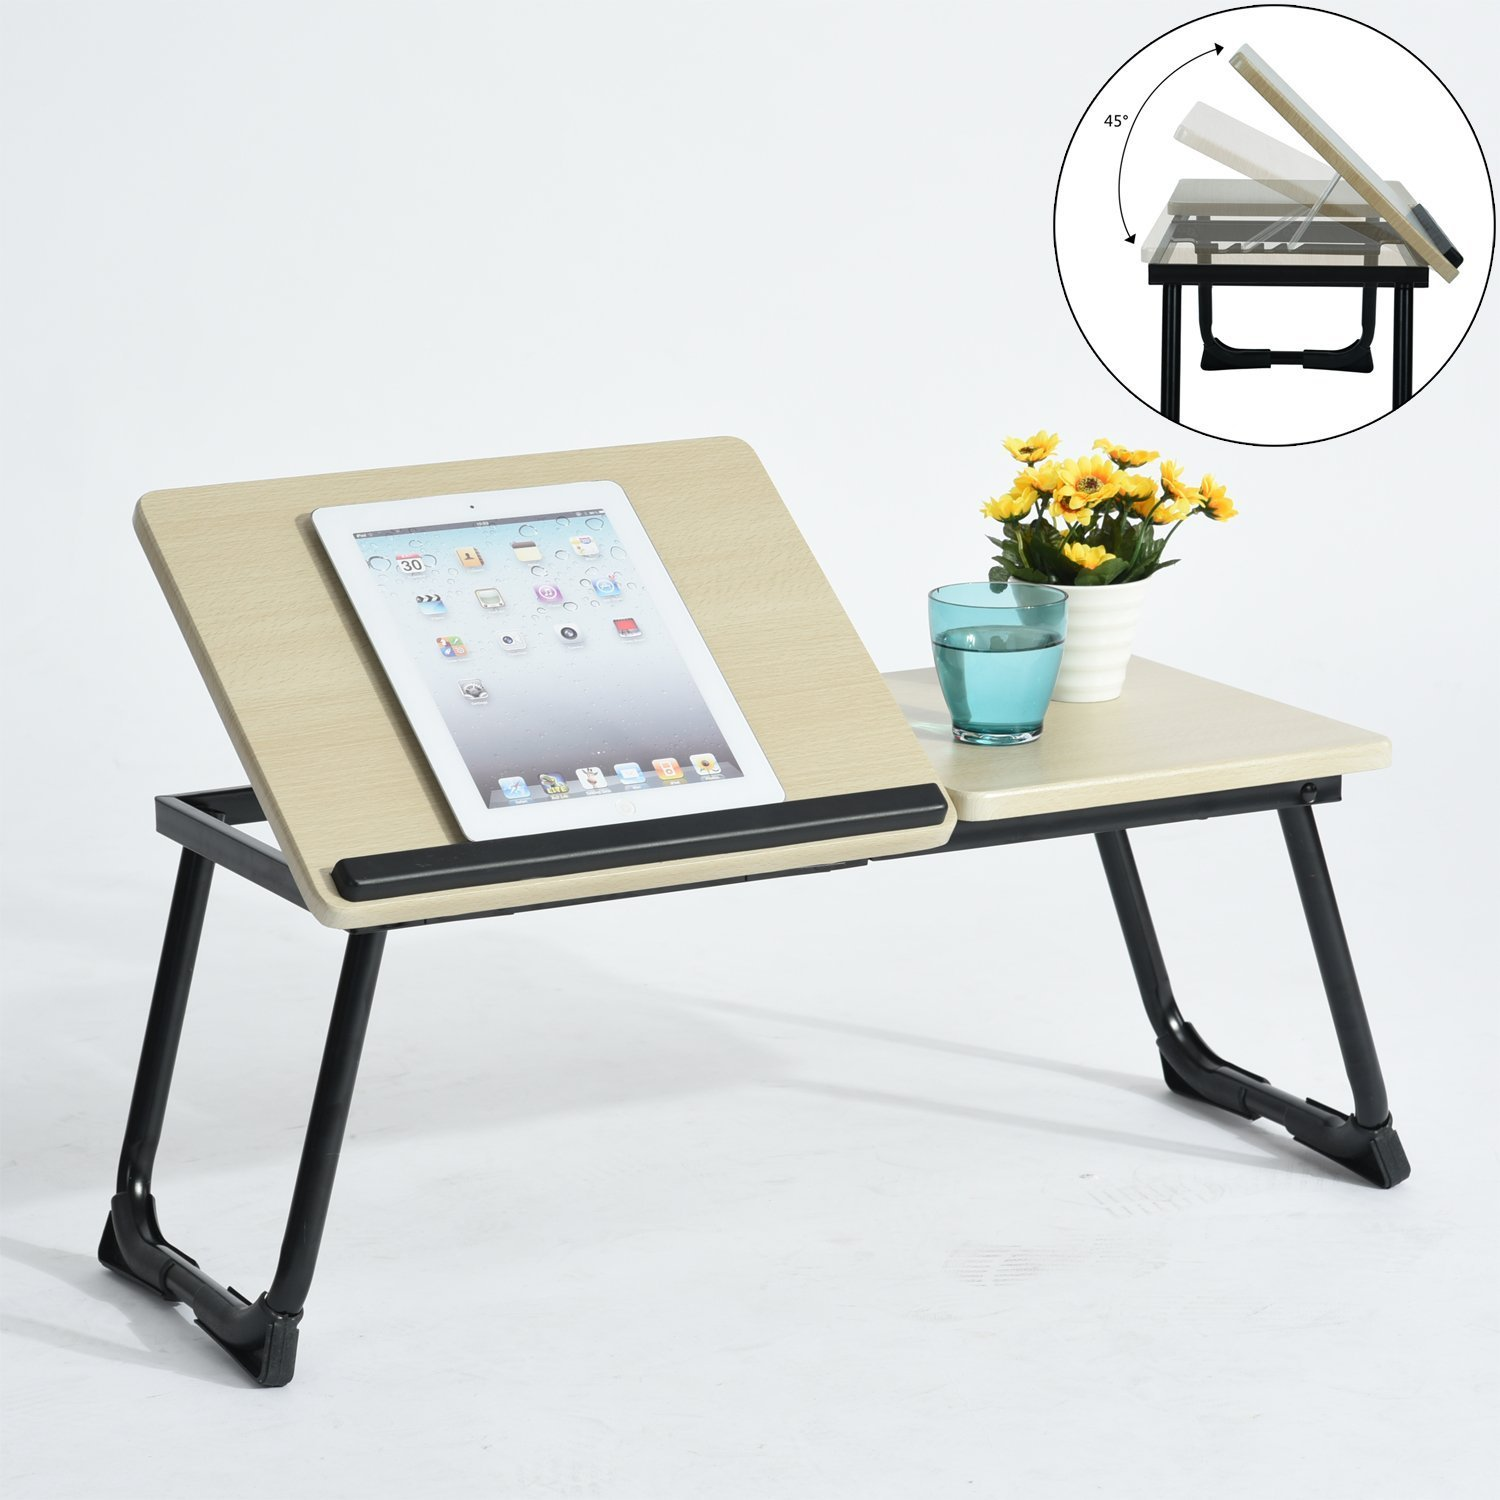 laptop desk the stand folded executive reviewing office by portable solutions